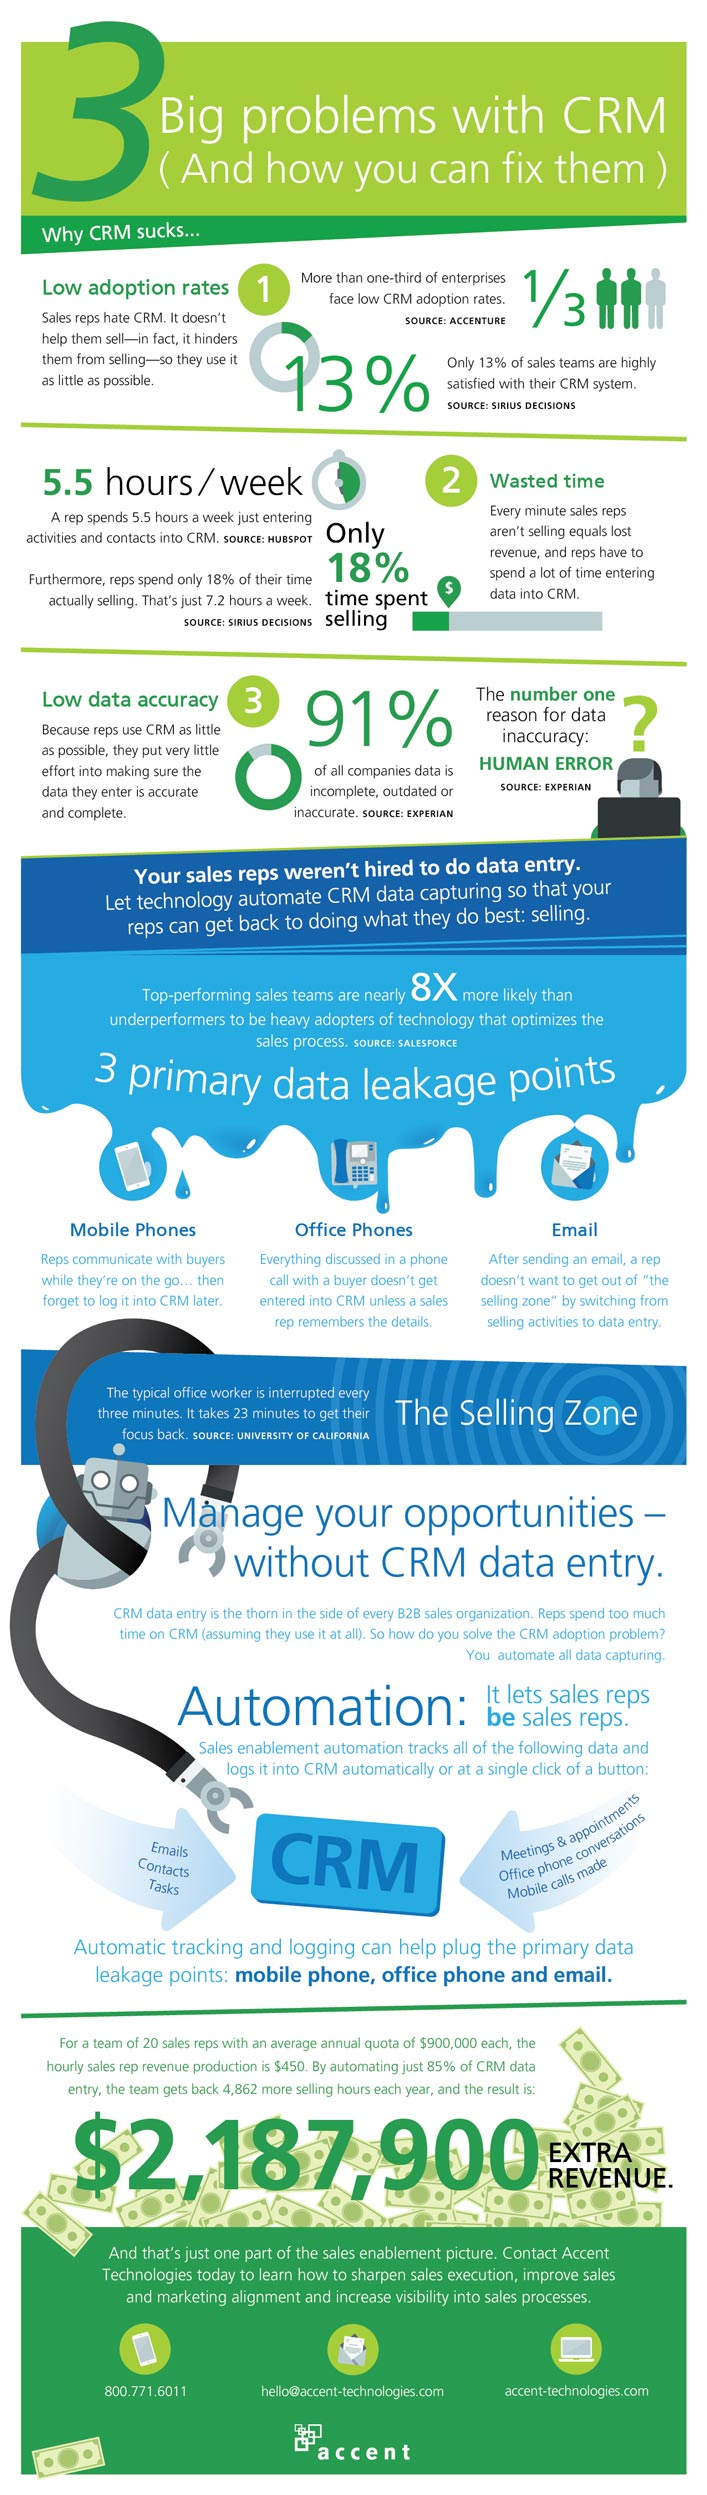 A green and blue listing of the 3 biggest CRM problems